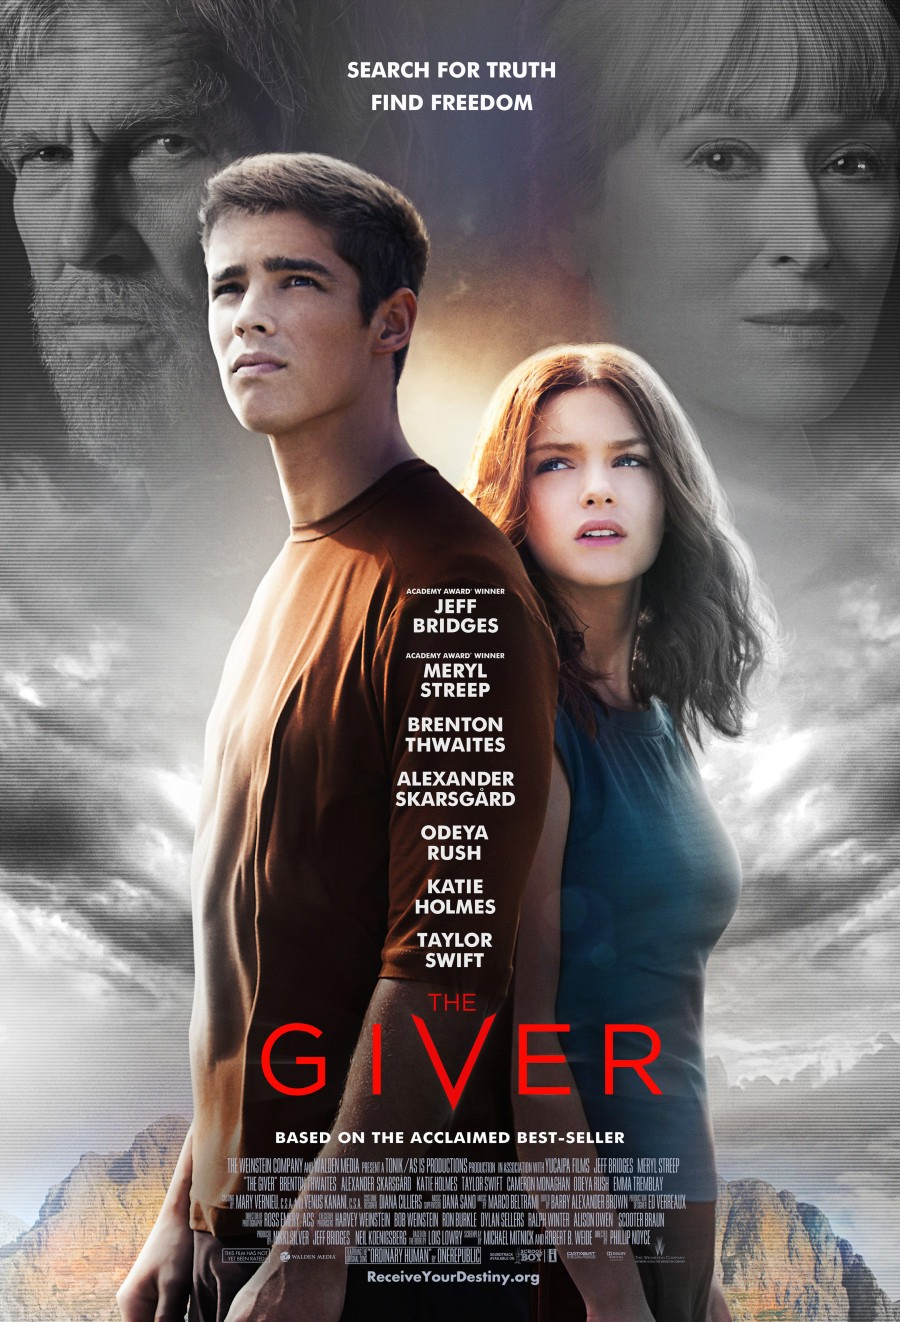 The Giver-Official Poster Banner PROMO XLG-26JUNHO2014